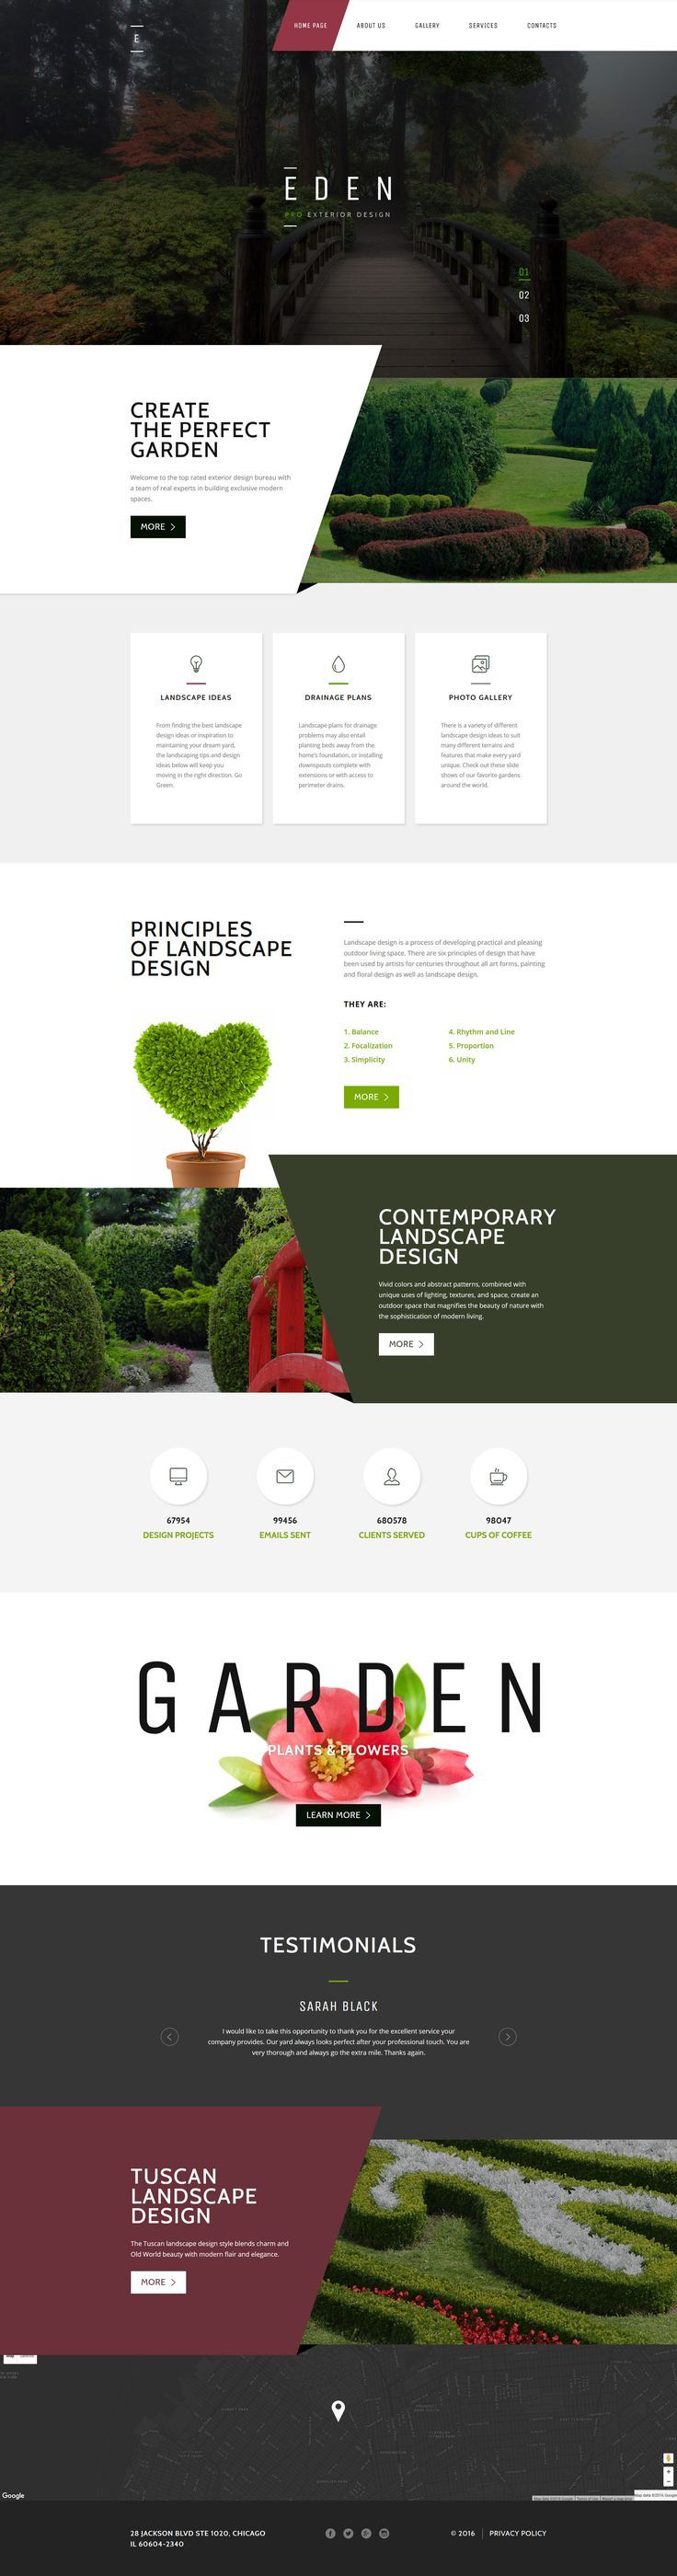 Garden Design Website Ideas 33 Best Garden Design Ideas  For More #garden Design Ideas .